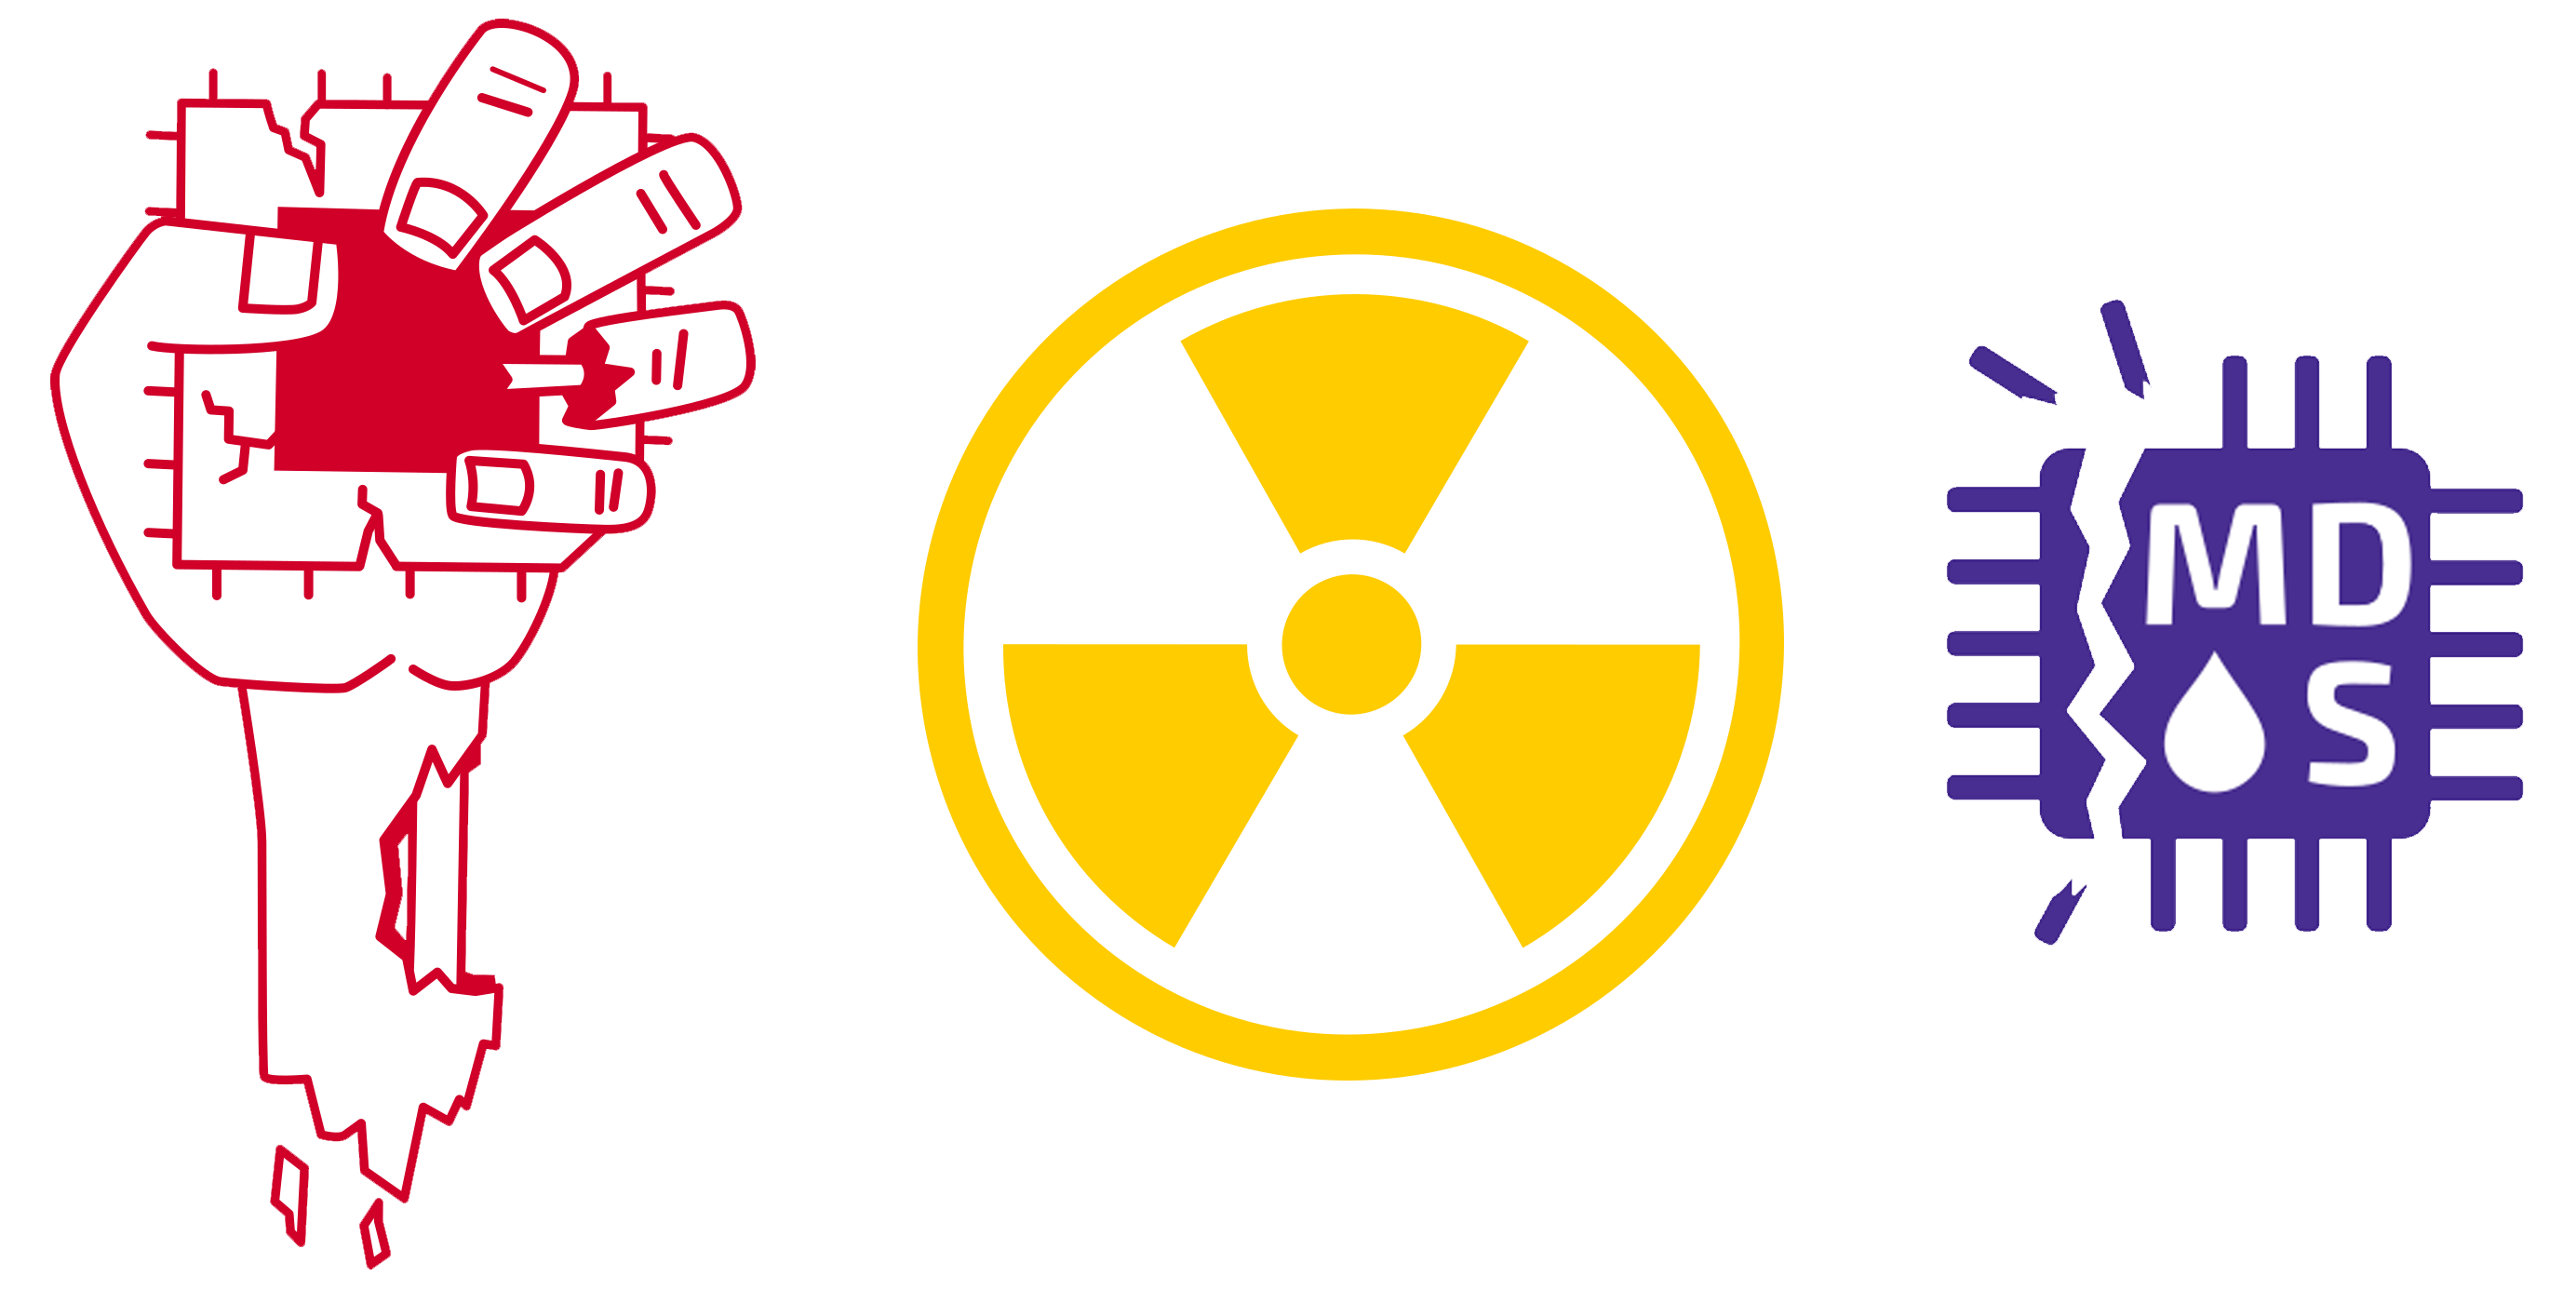 Fallout RIDL Zombieload logo's